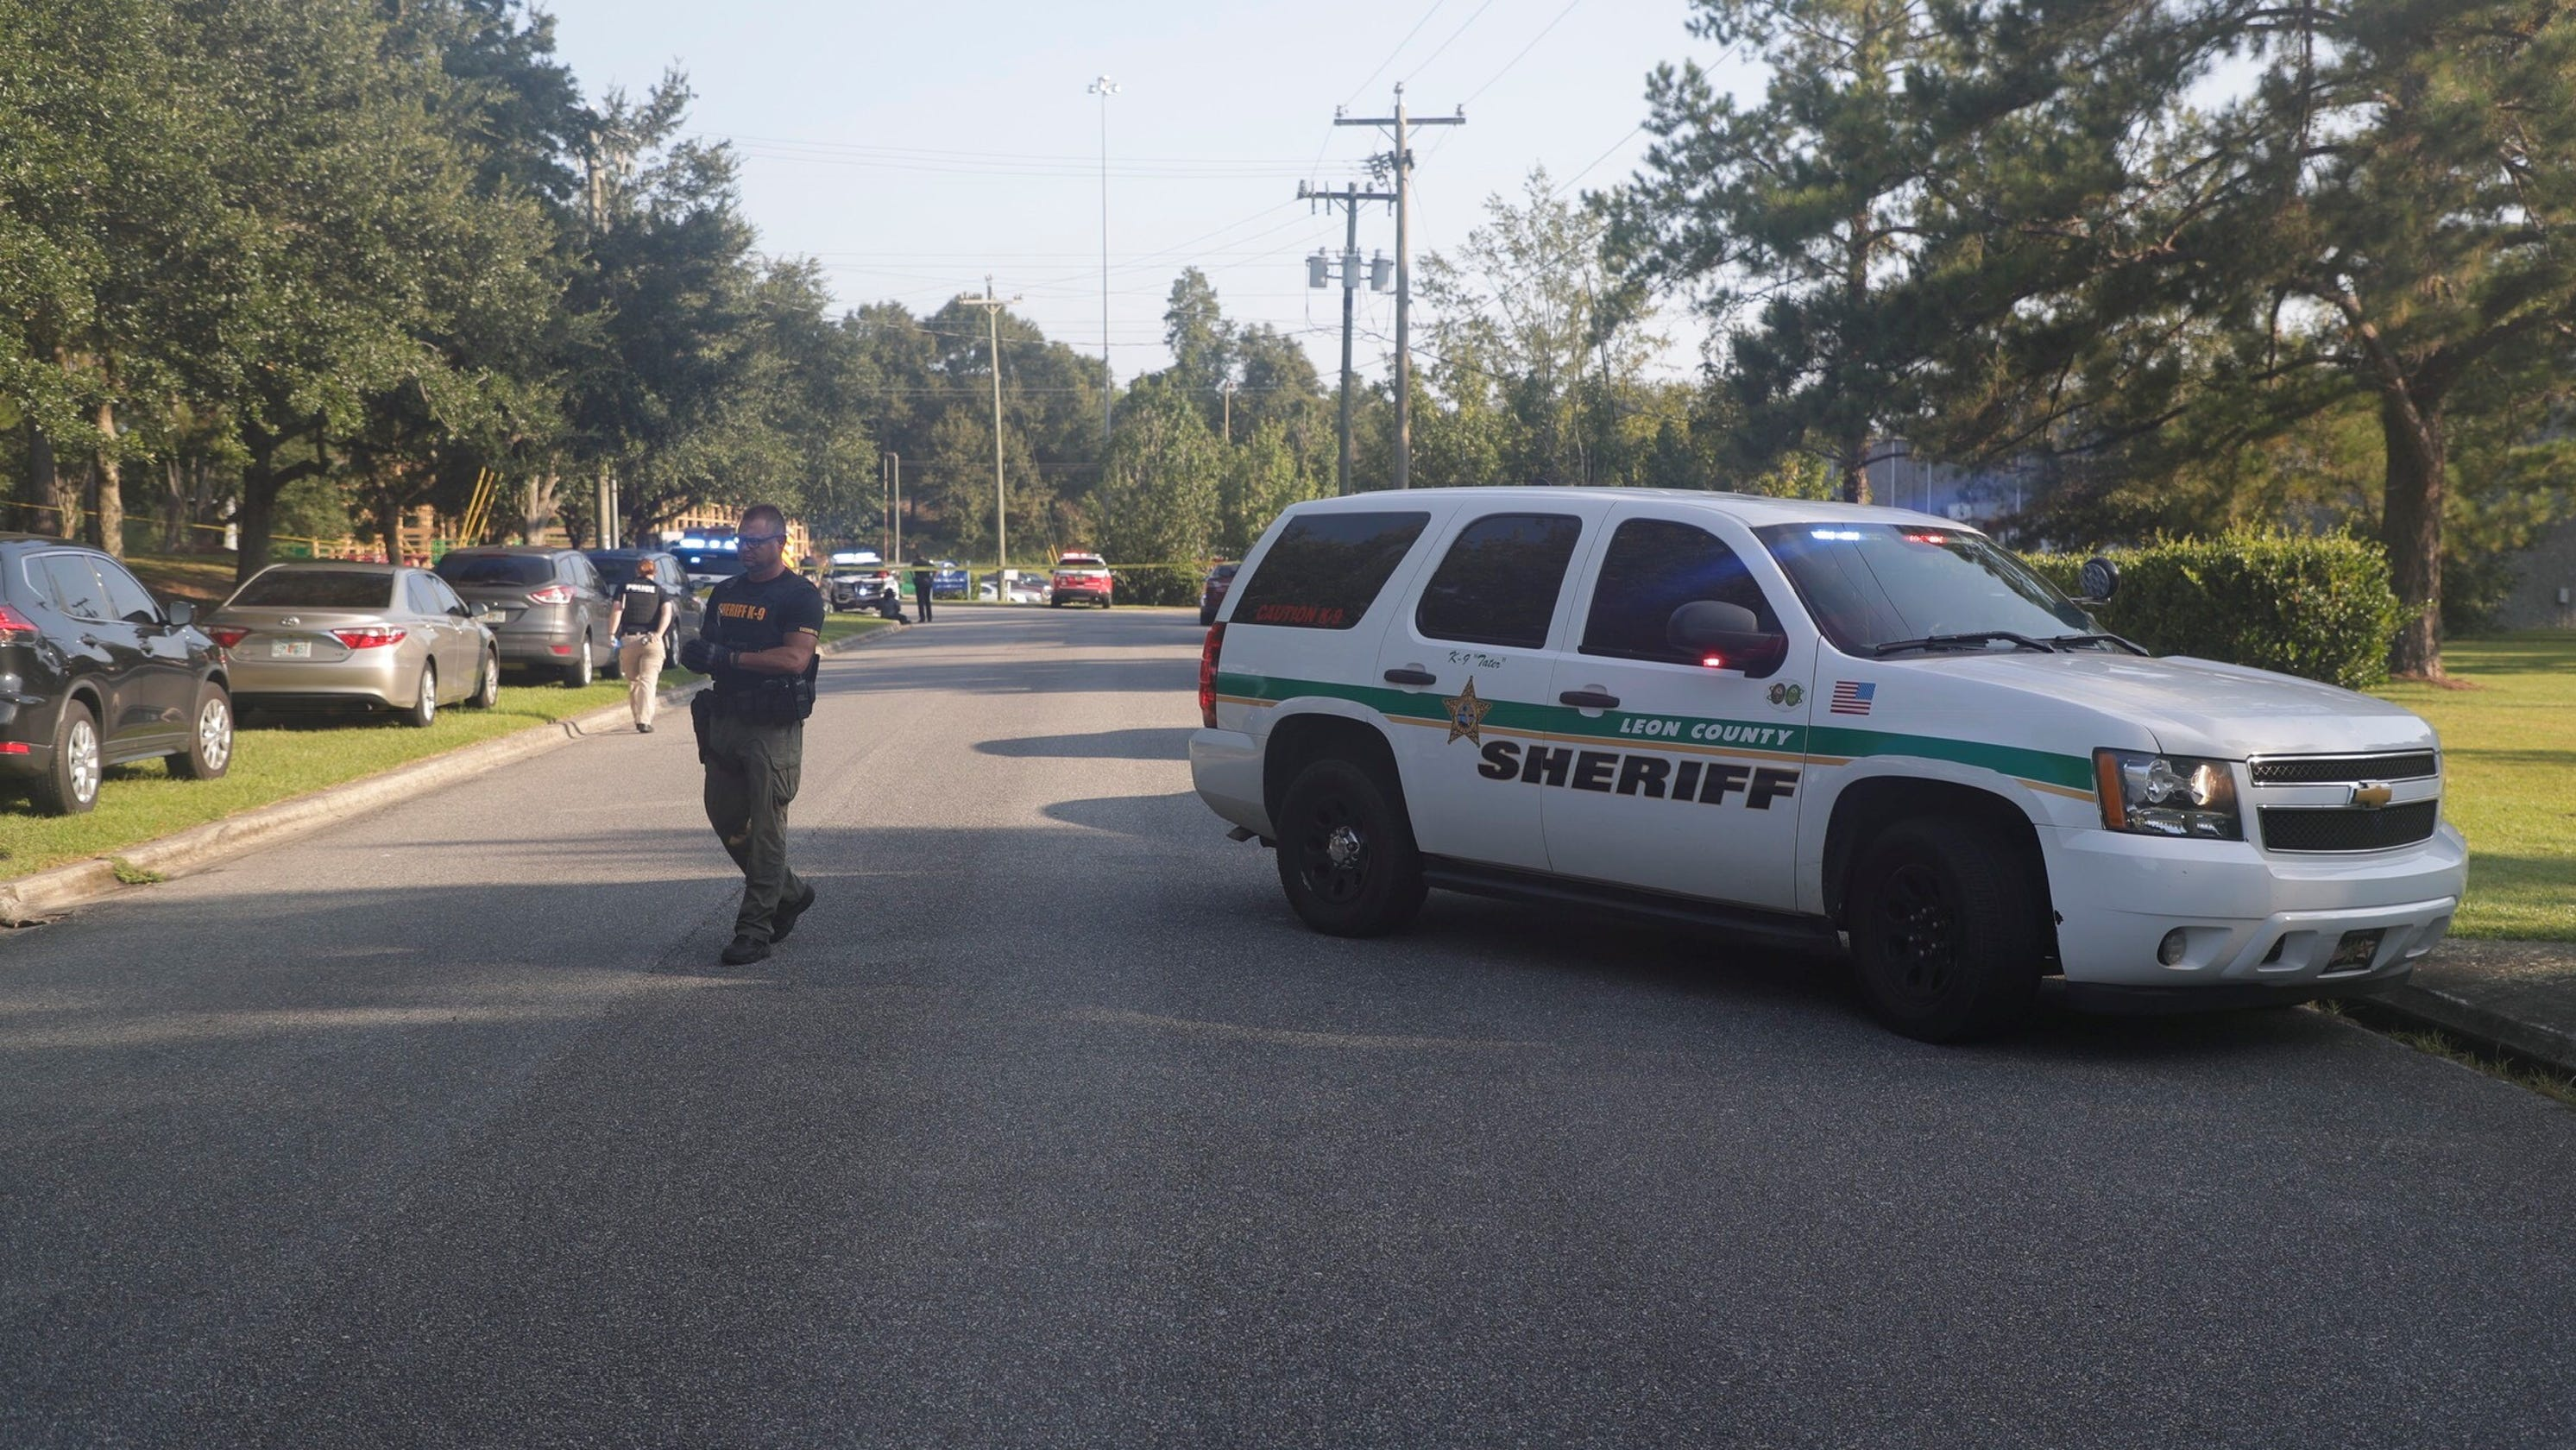 Tallahassee, Florida, police investigate 'massive stabbing' at business